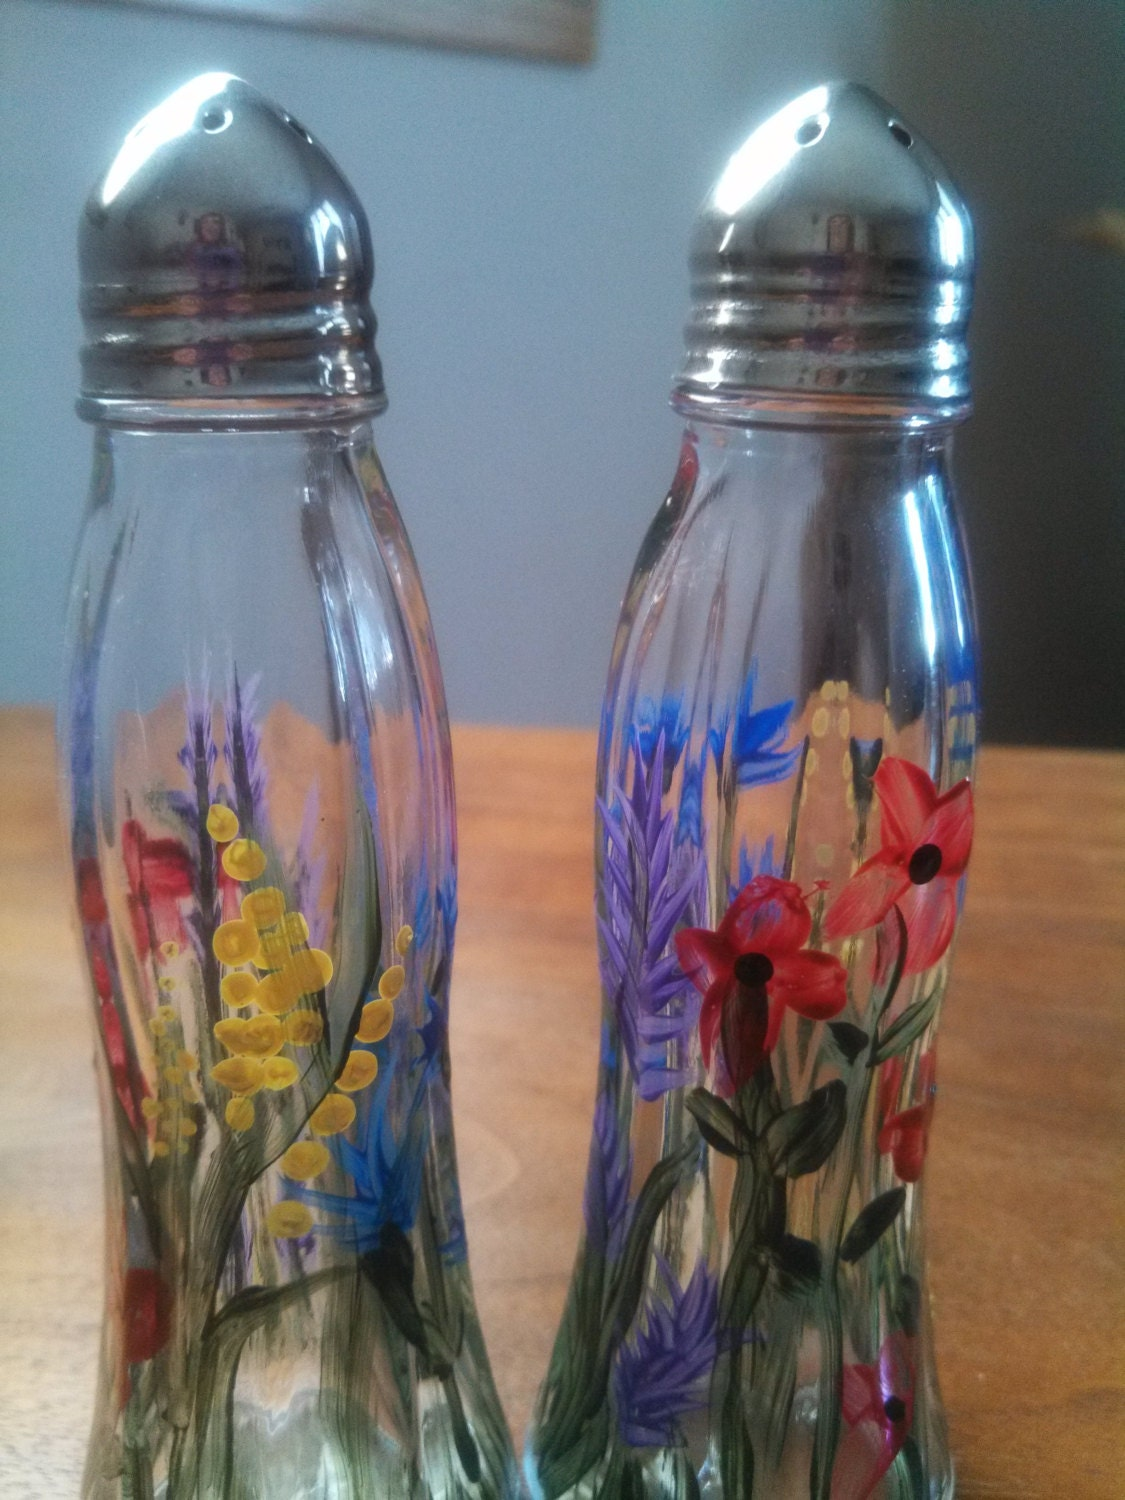 Colorful Hand Painted Salt And Pepper Shakers Painted With My: colorful salt and pepper shakers